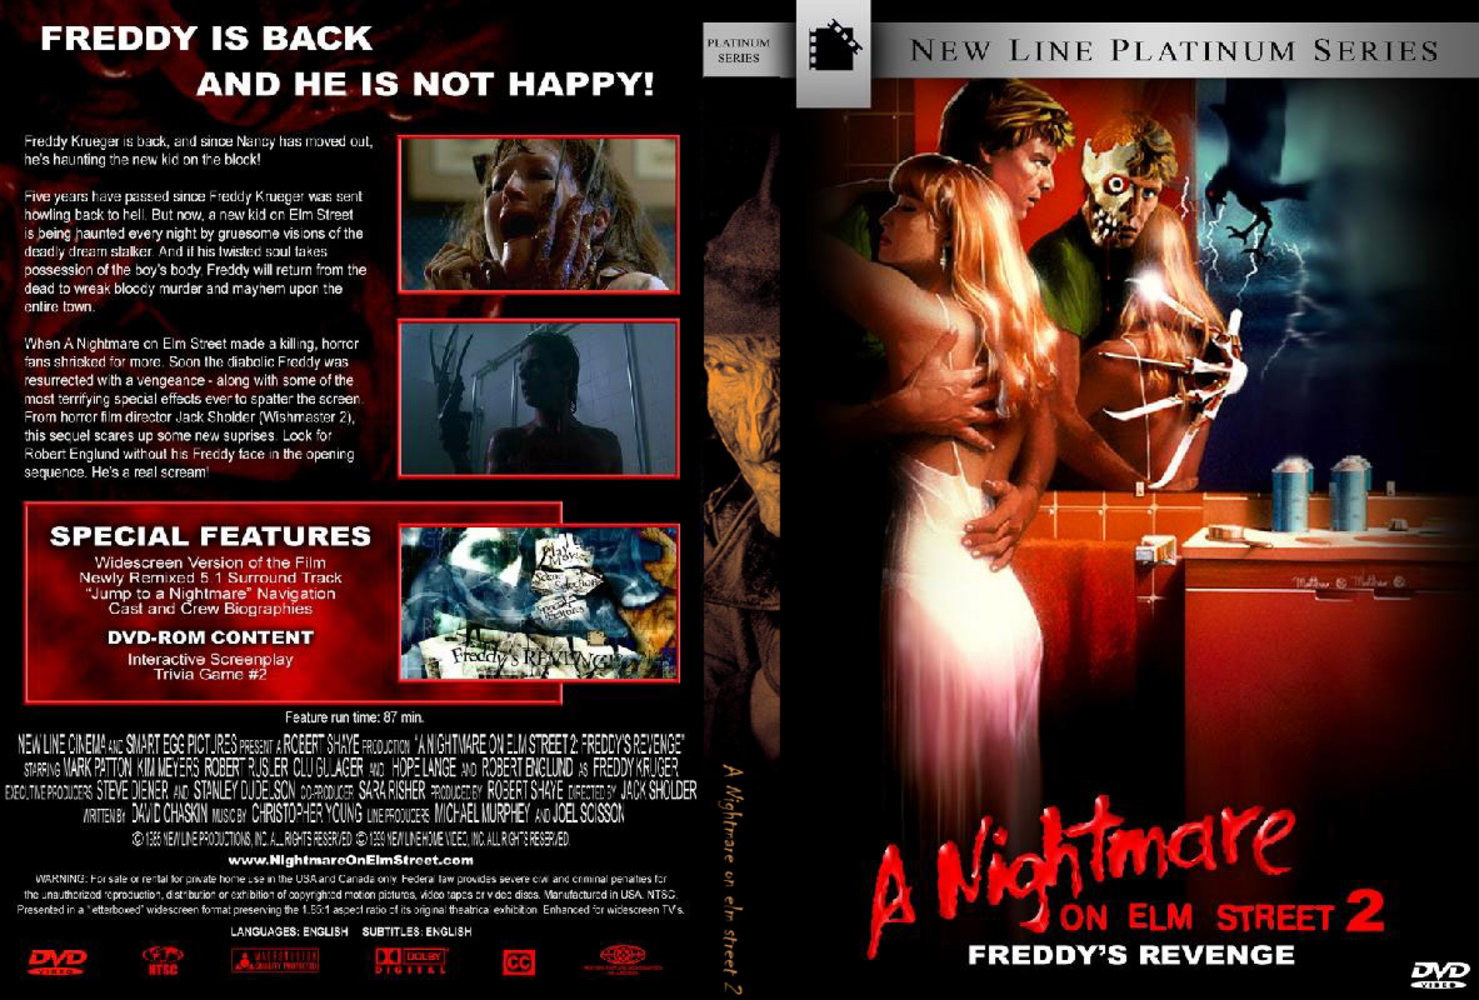 A Nightmare On Elm Street Collection Volume 2